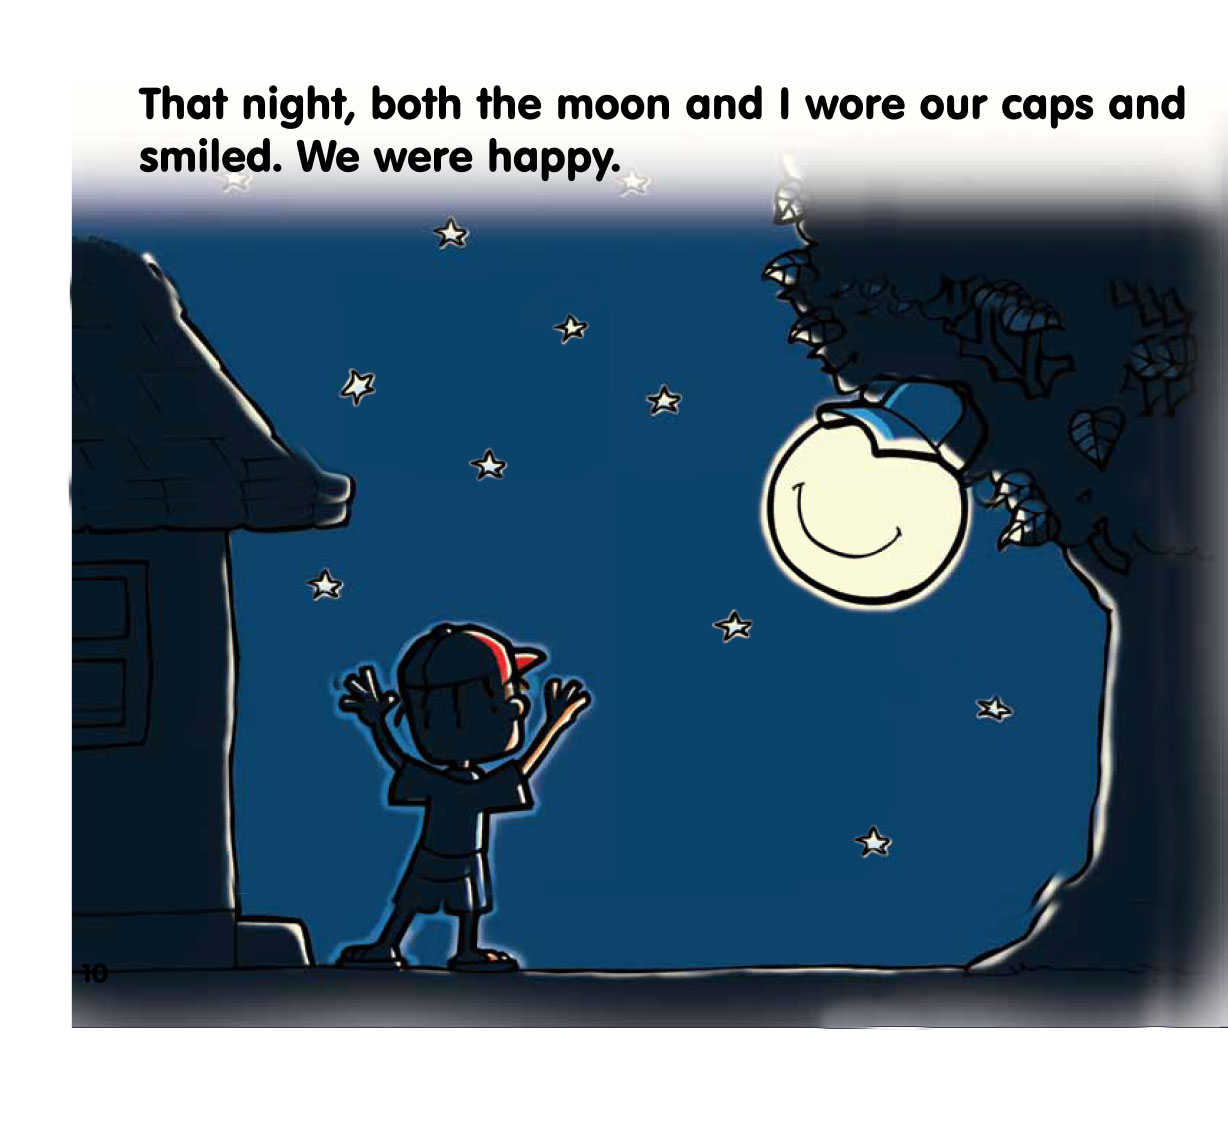 Free bedtime story The Moon and the Cap - page 10